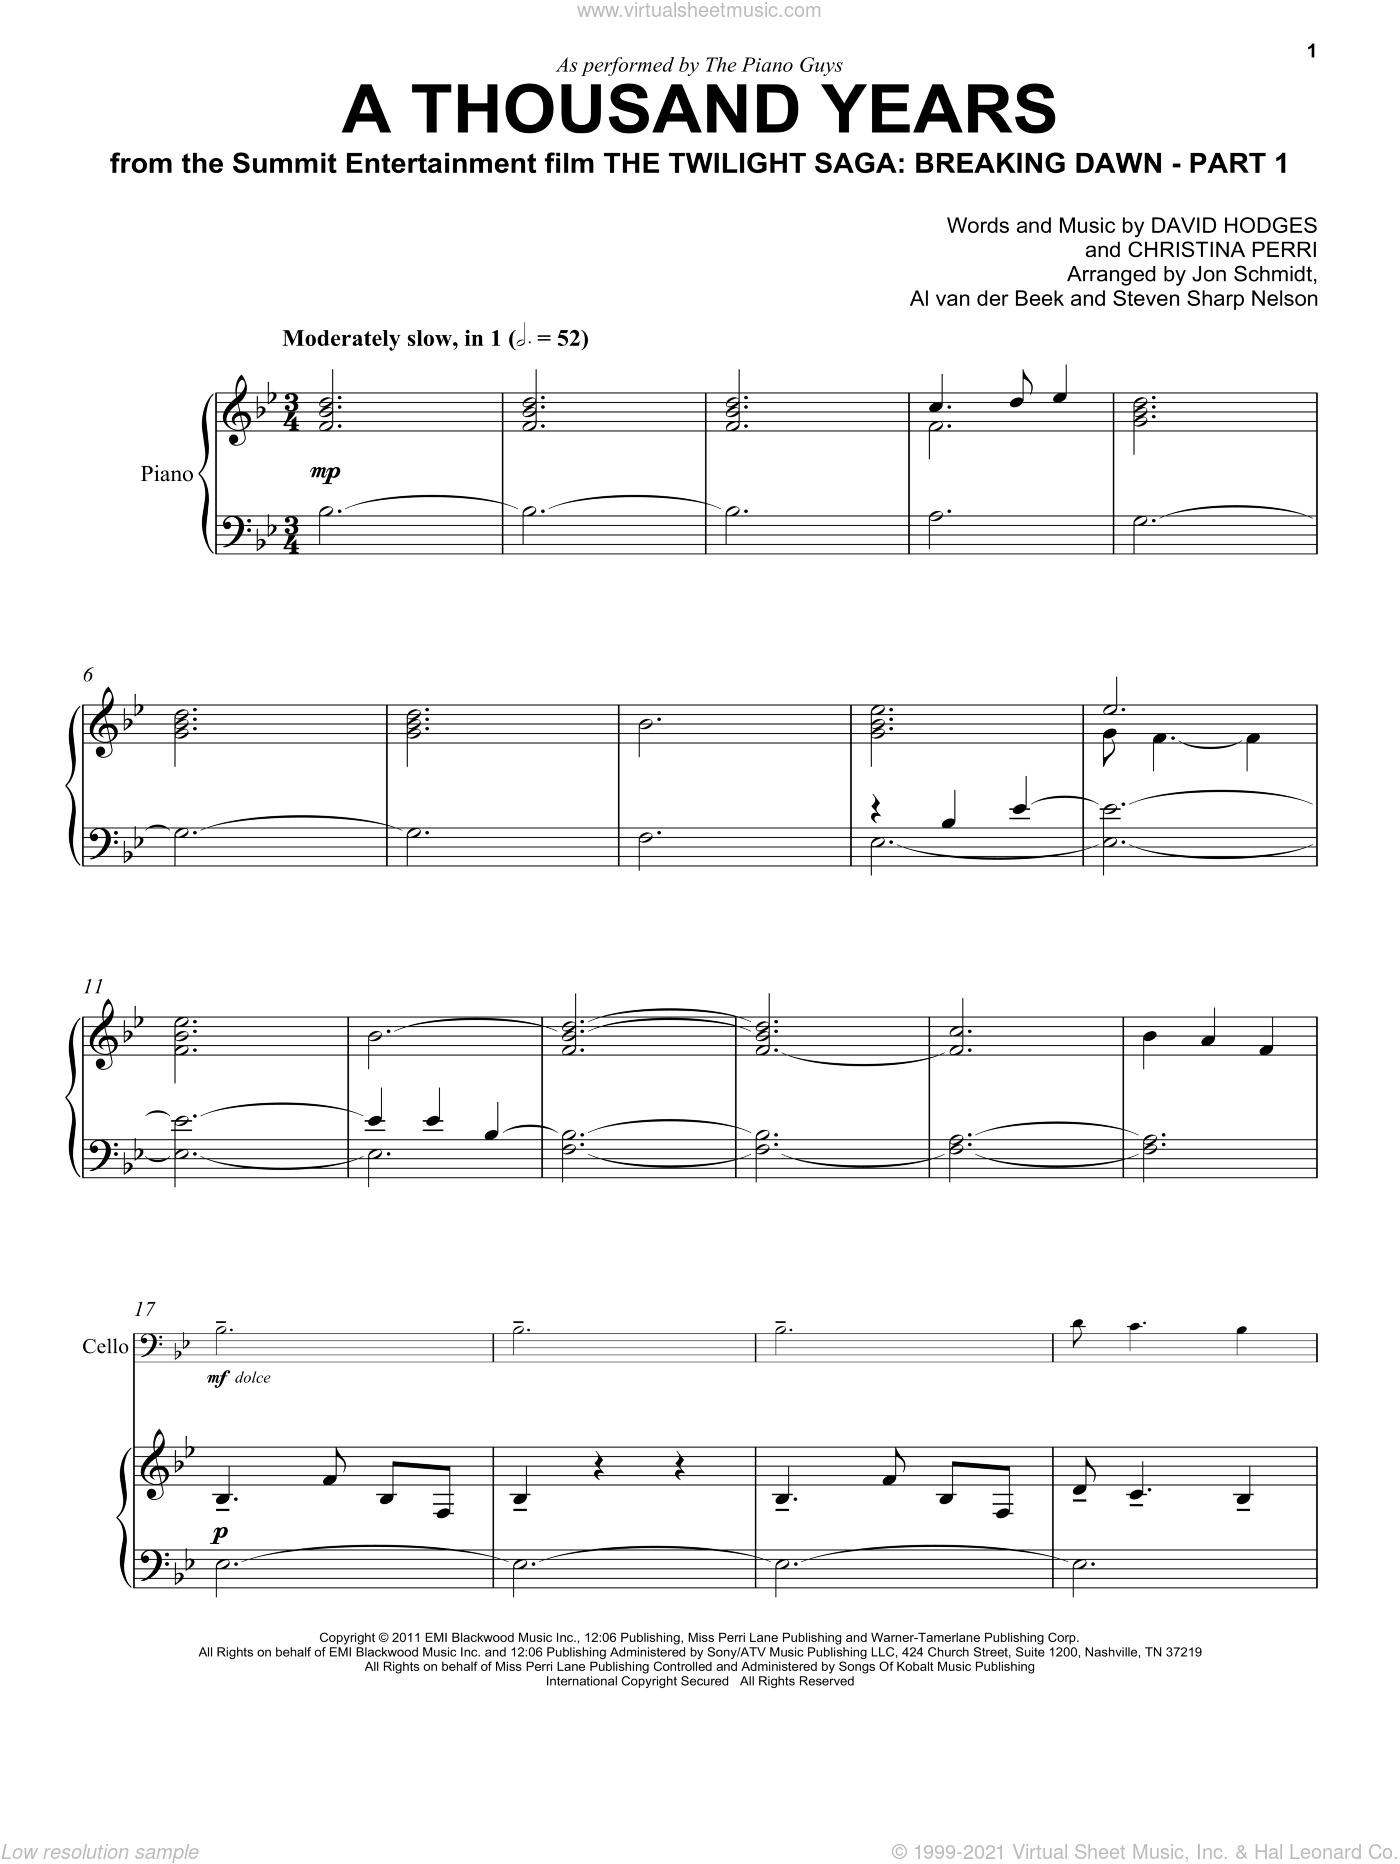 A Thousand Years sheet music for cello and piano by The Piano Guys, Christina Perri and David Hodges, classical wedding score, intermediate skill level